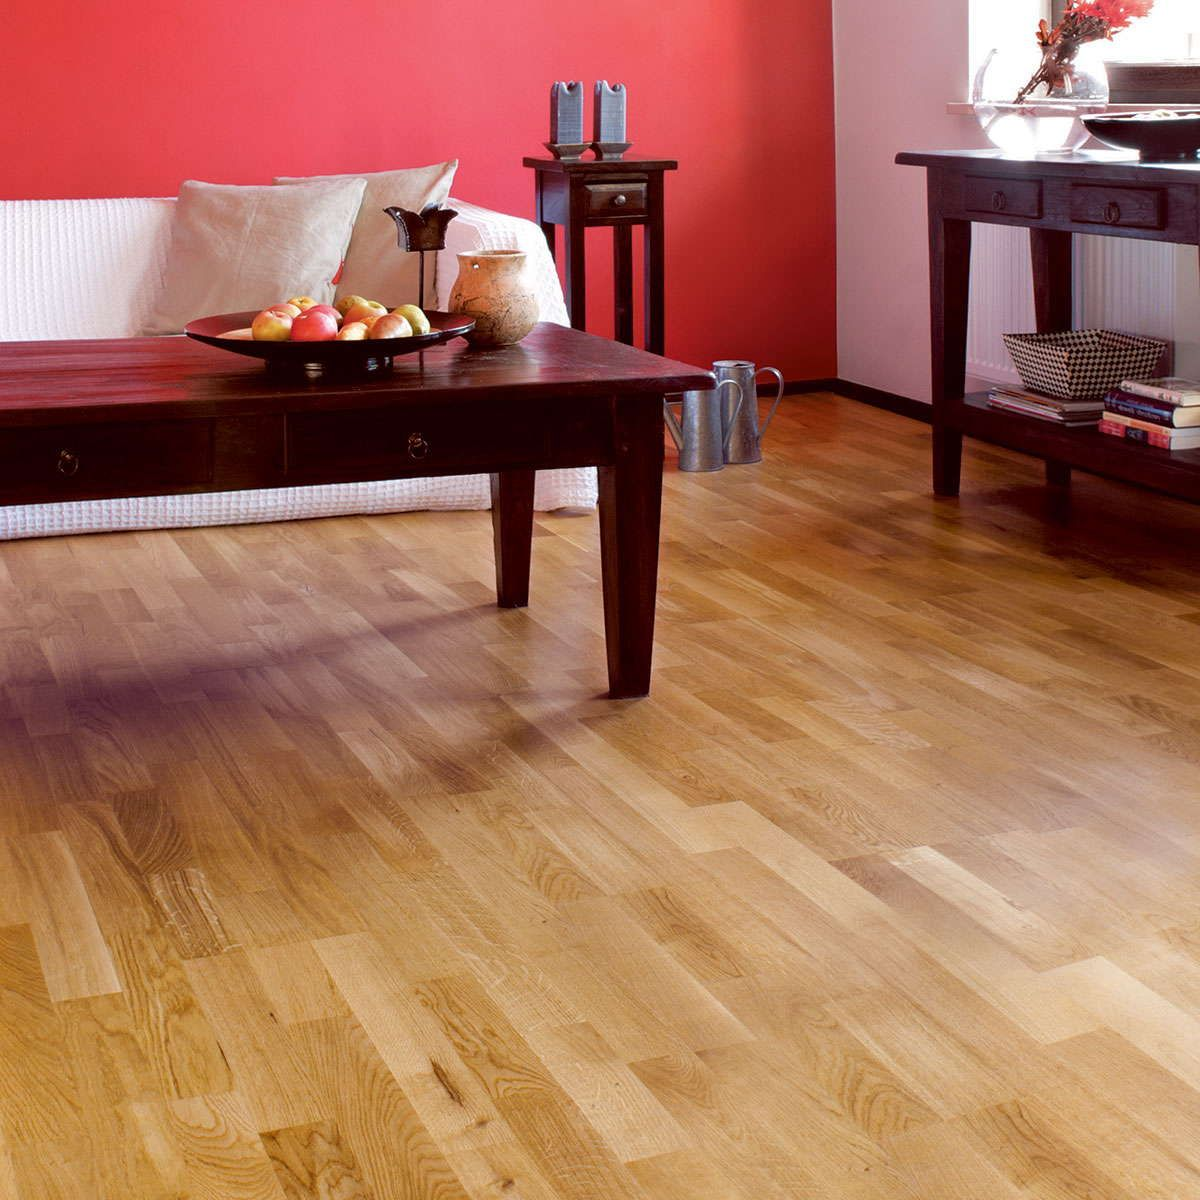 Natura Oak Brooklyn Wood Flooring Is A 3 Strip Engineered Wooden Floor With  A Rustic Appearance